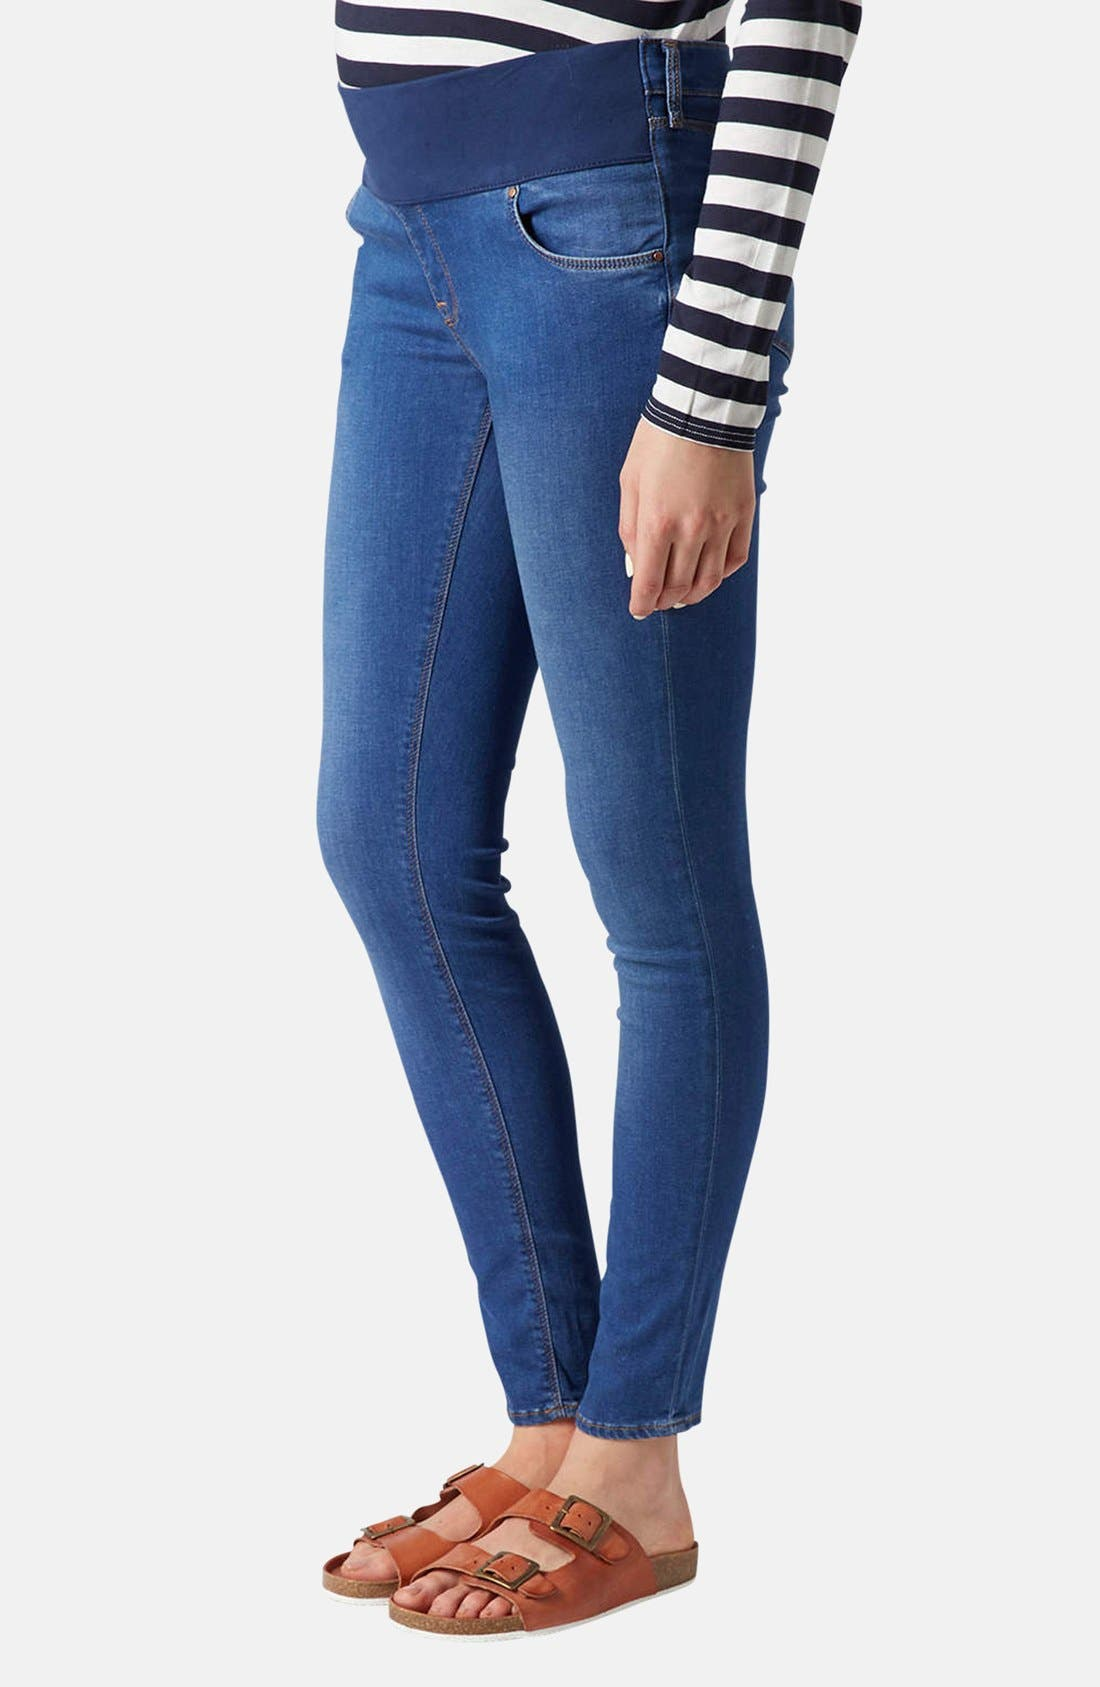 Alternate Image 1 Selected - Topshop 'Leigh' Maternity Skinny Jeans (Regular and Short)